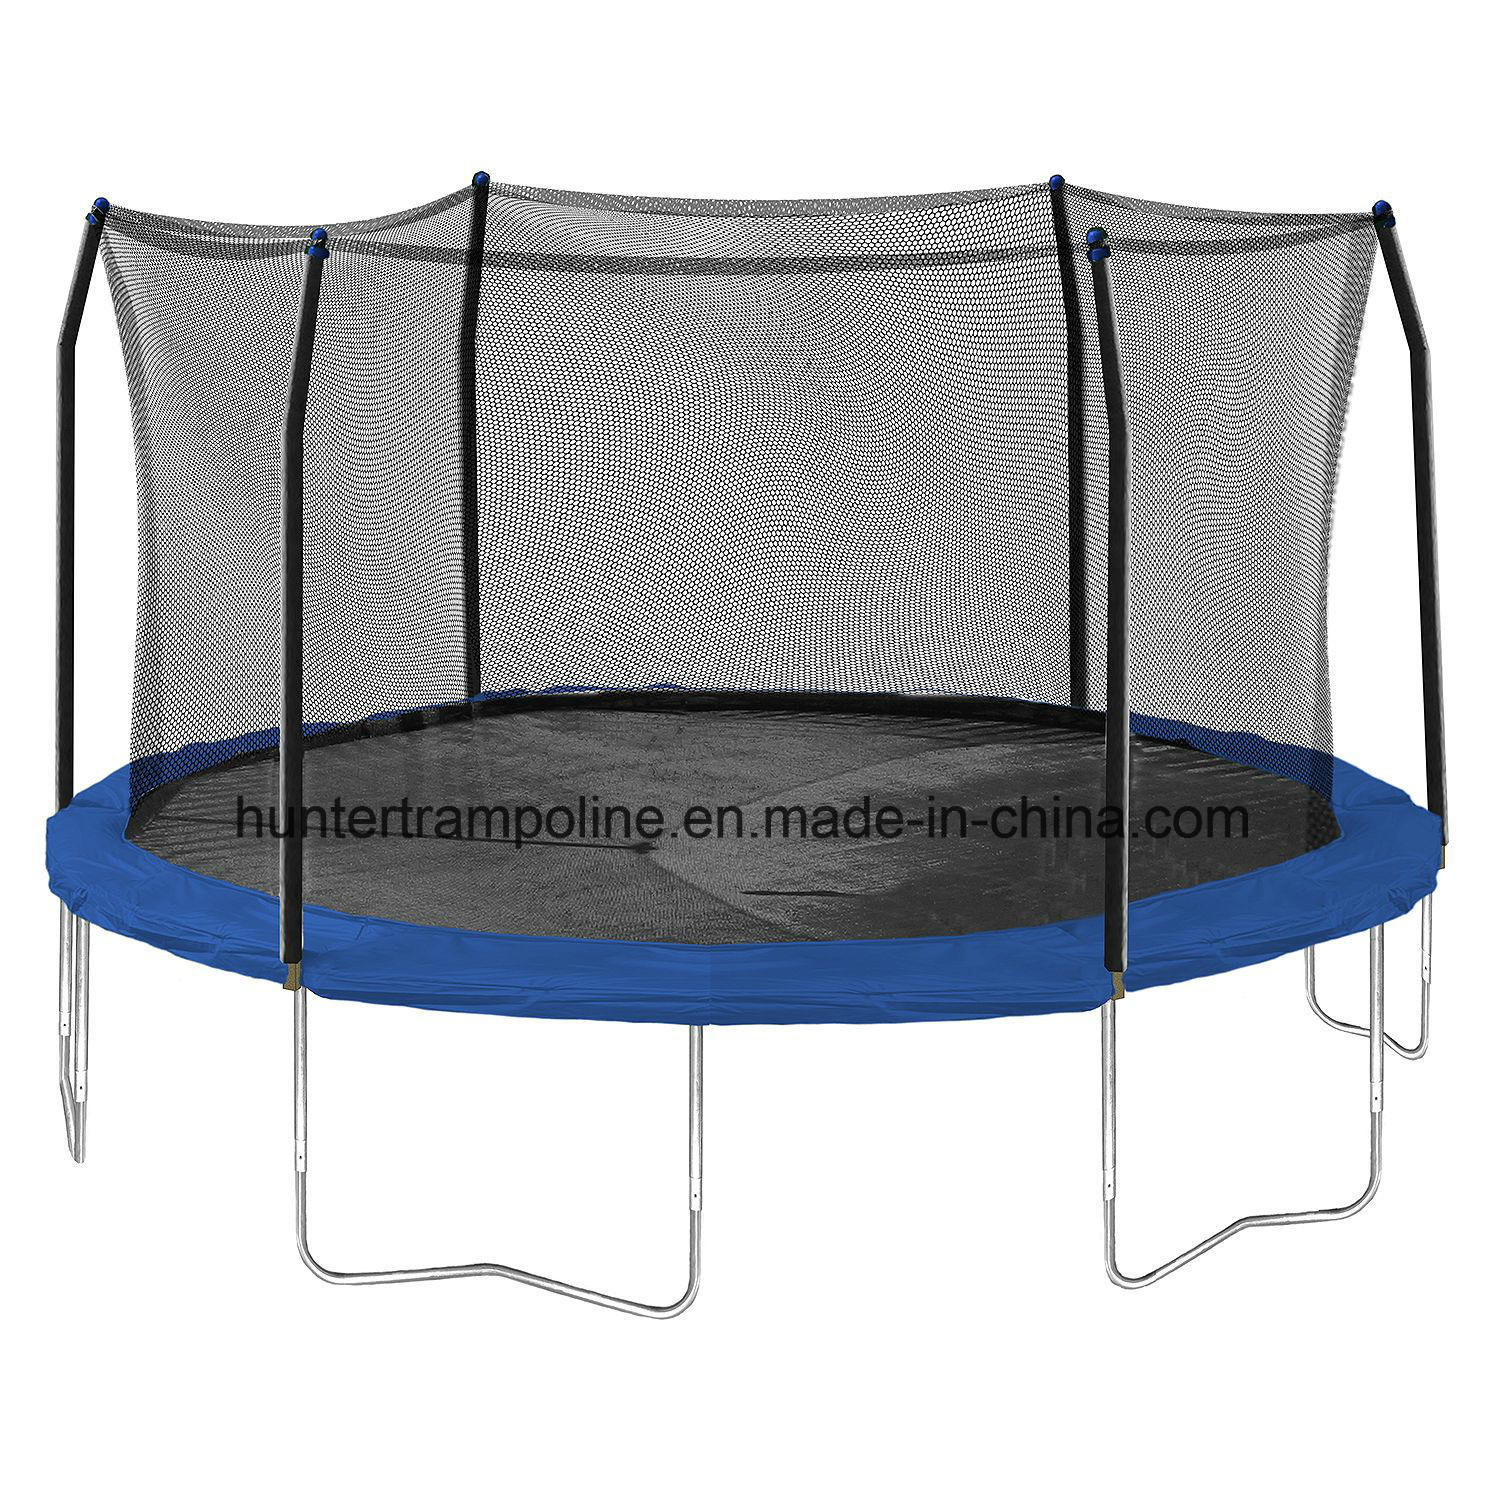 15FT Outdoor Round Super Jump Trampoline with Enclosure